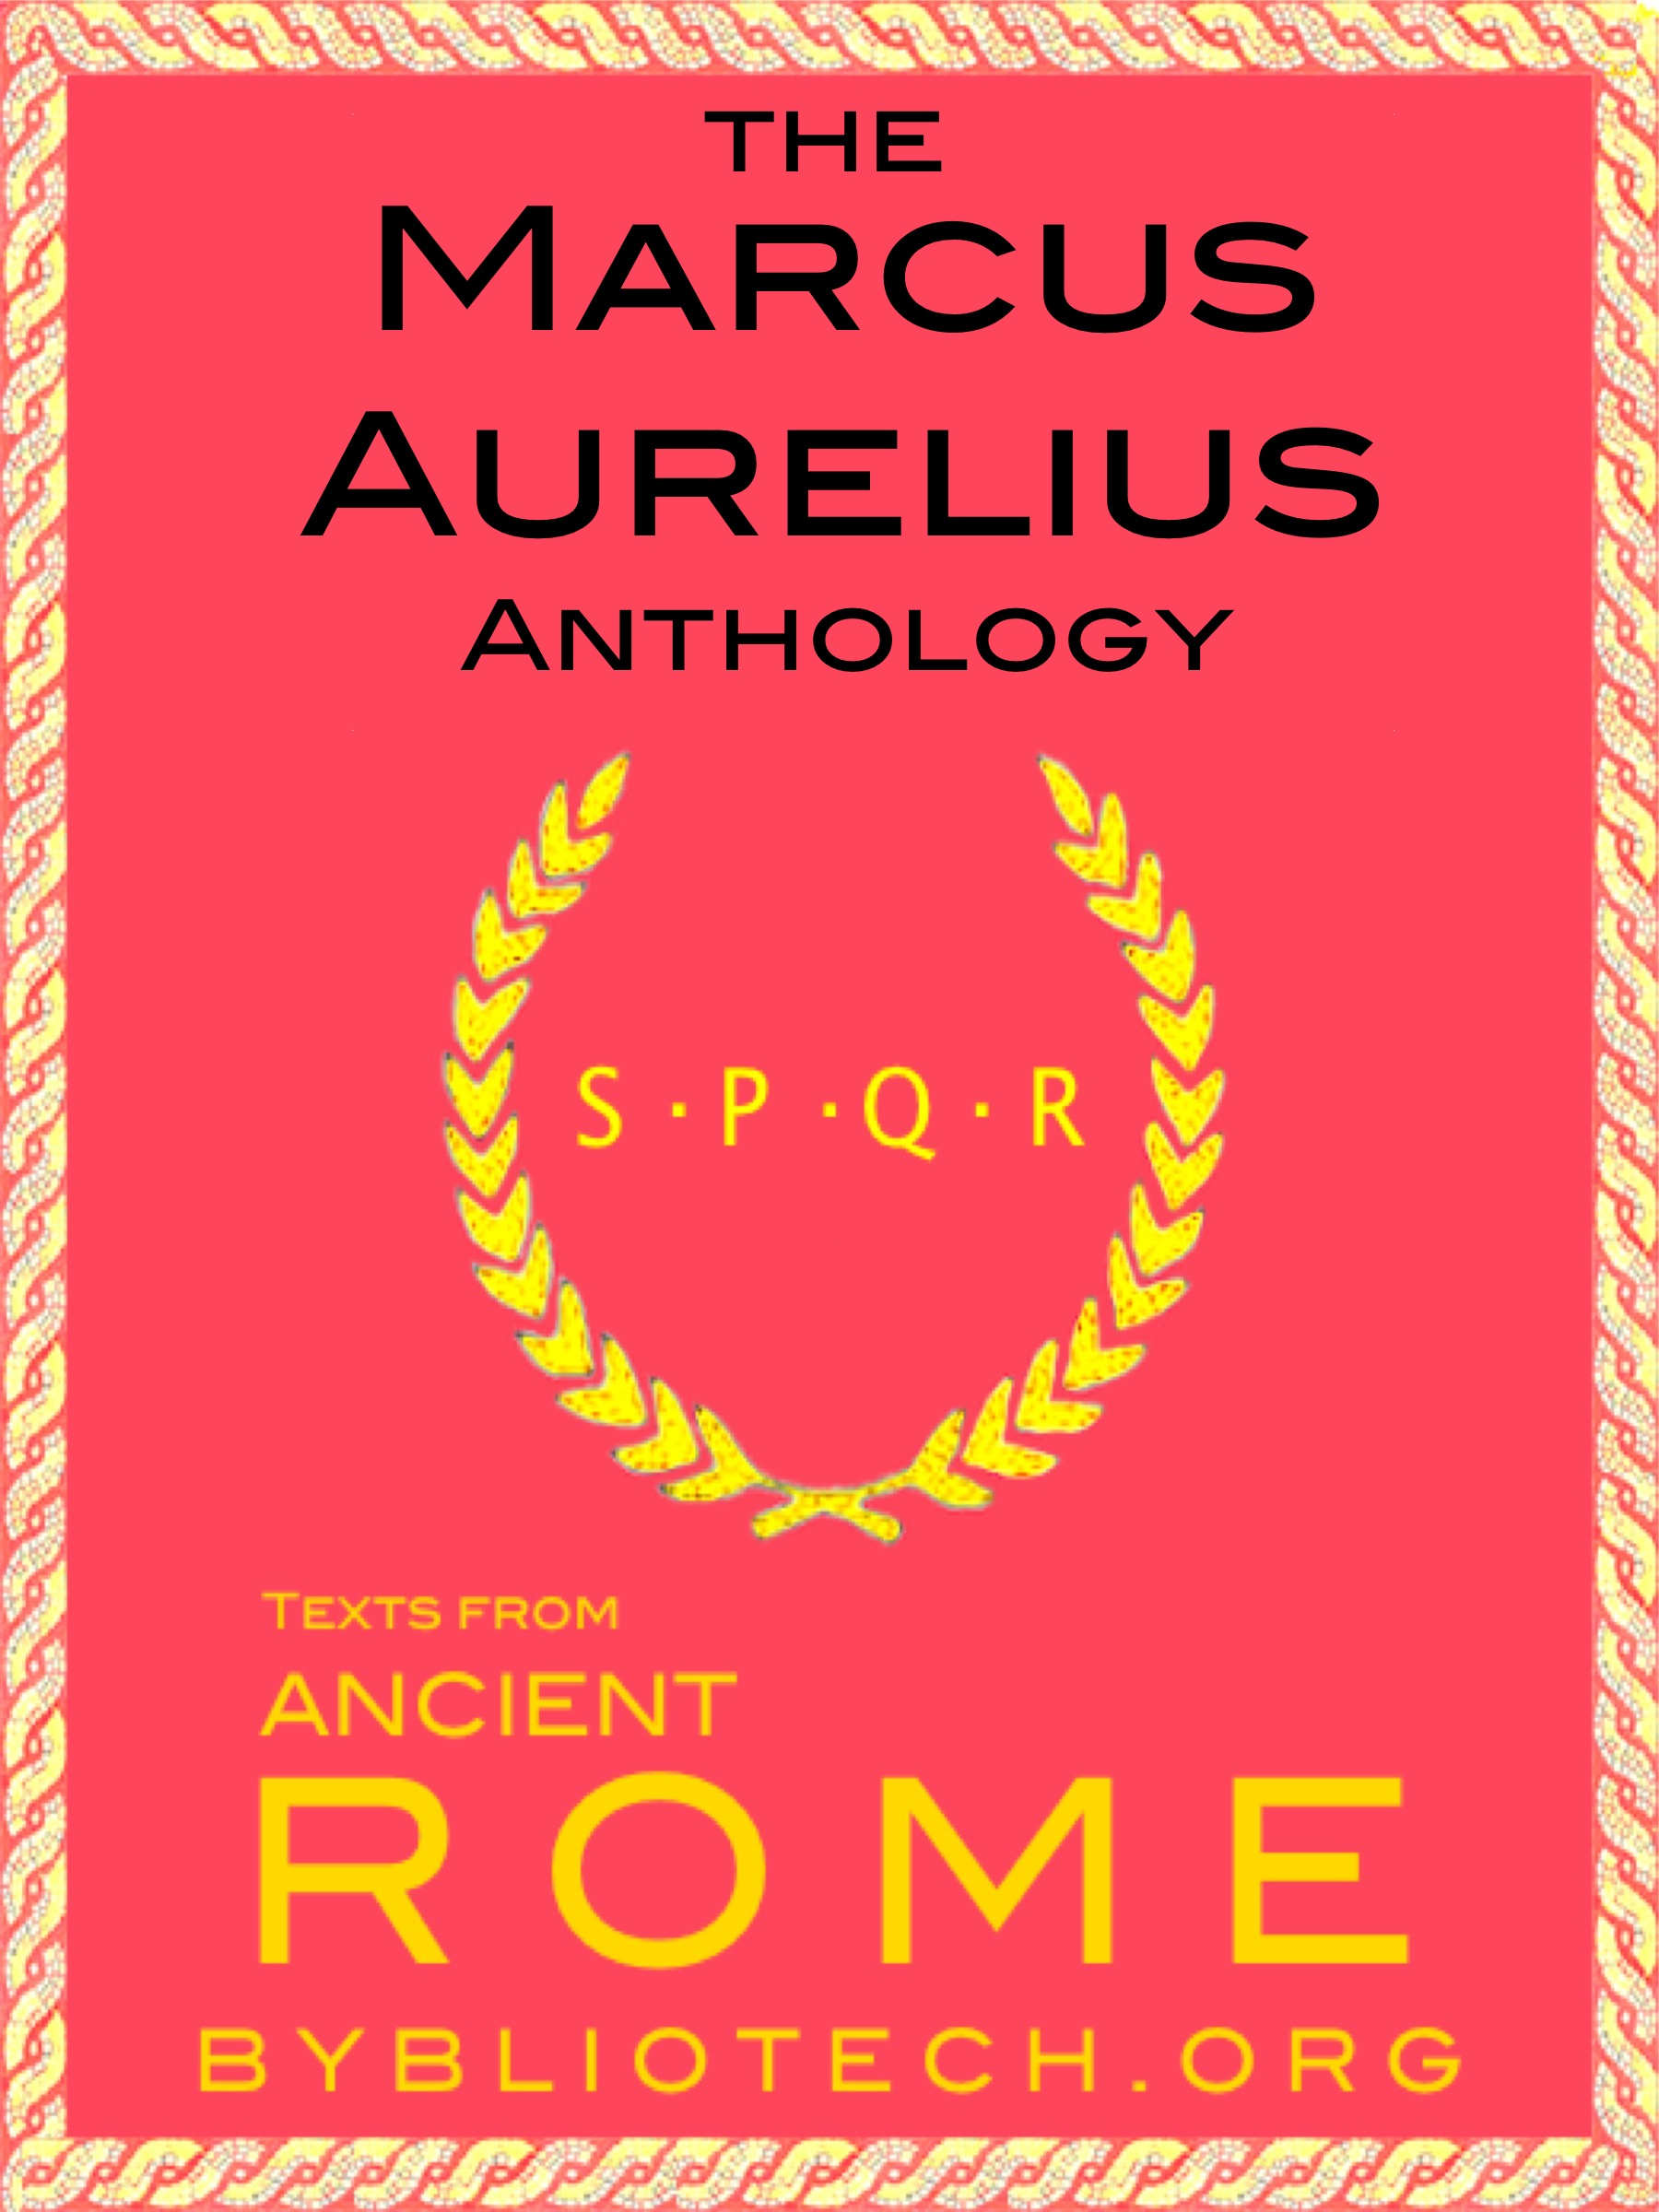 The Complete Marcus Aurelius Anthology: The Meditations